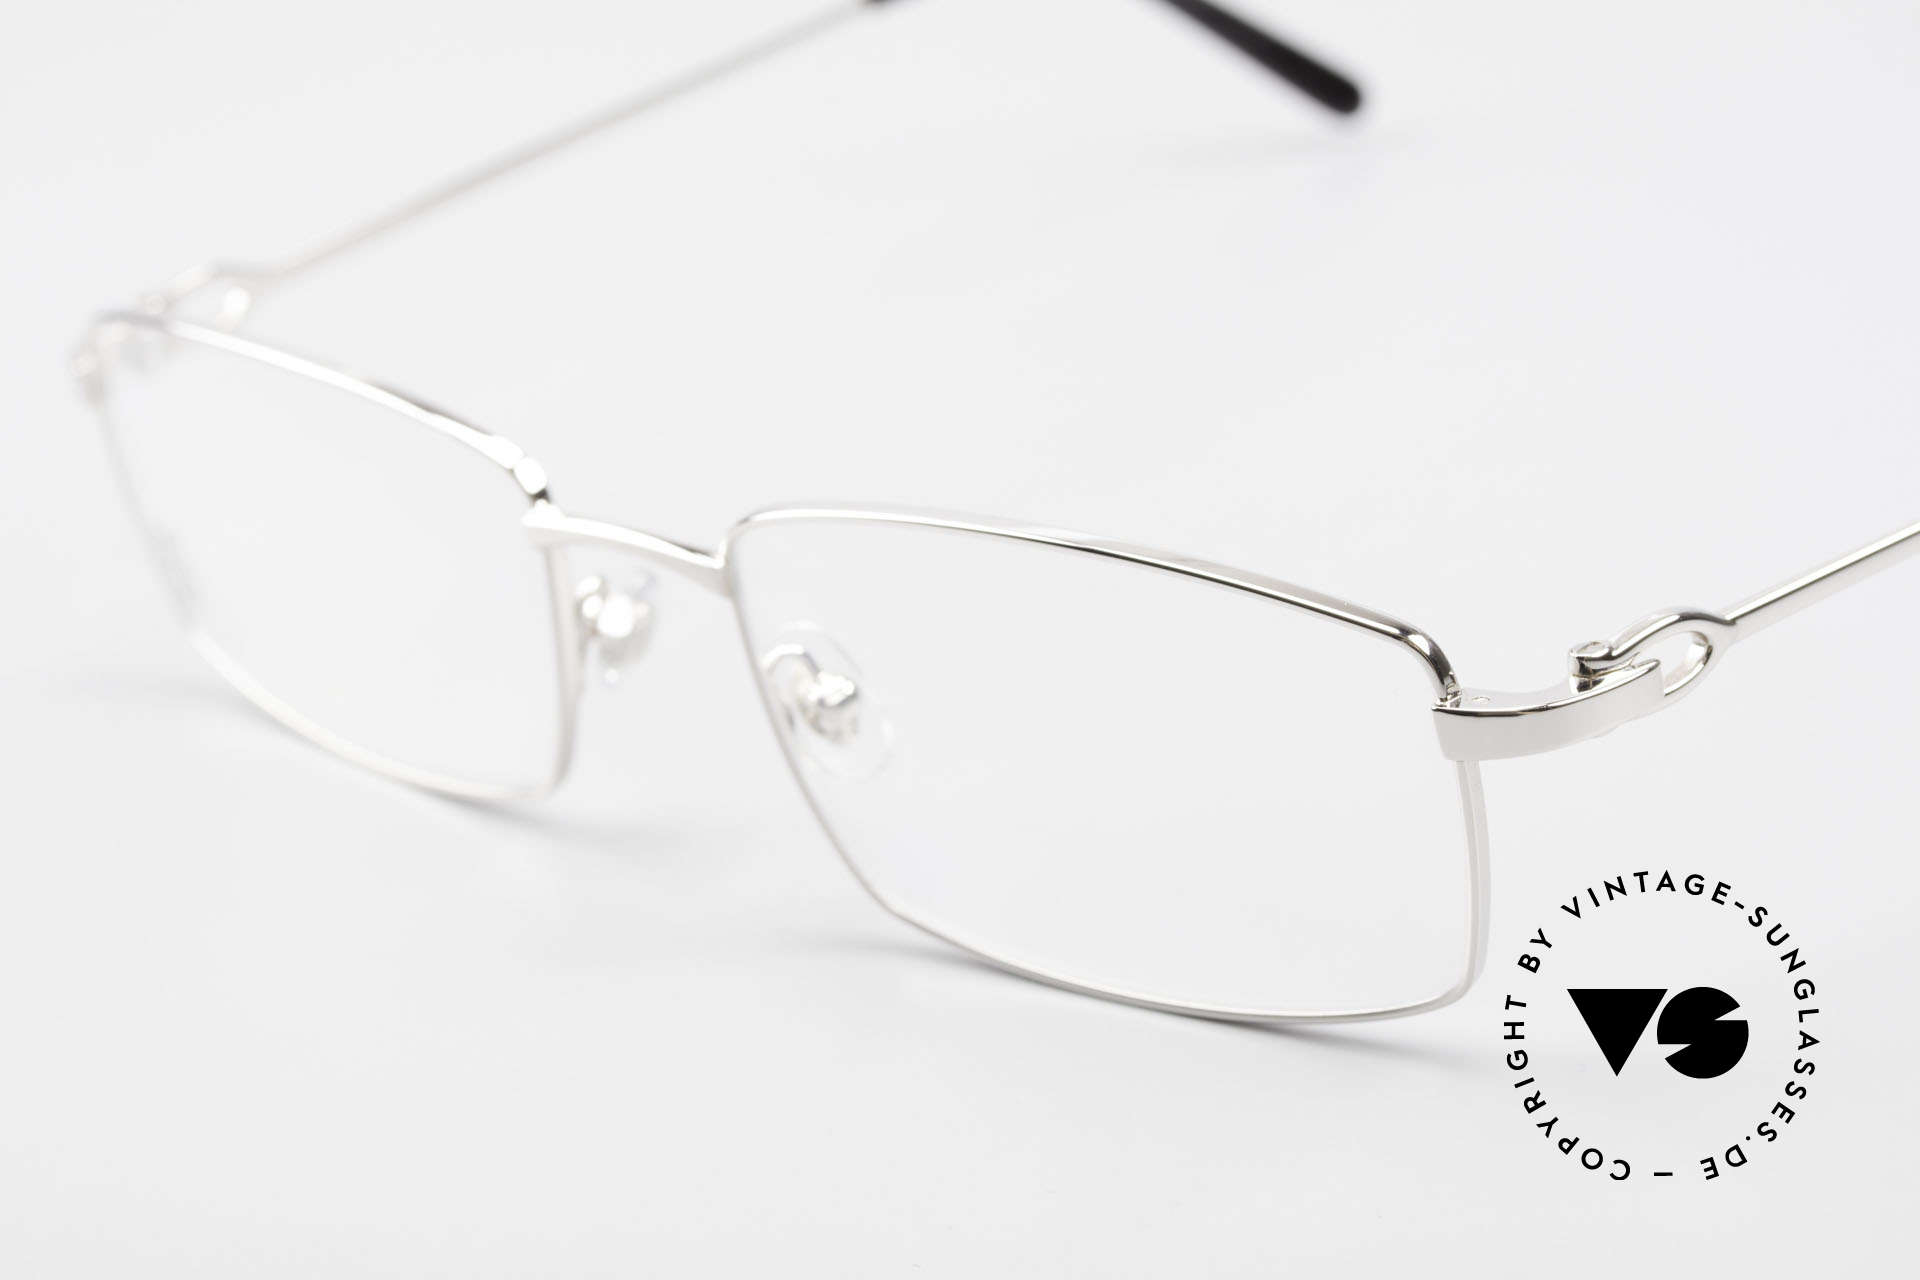 Cartier River - M Square Frame Luxury Platinum, unworn luxury frame with original case and packing, Made for Men